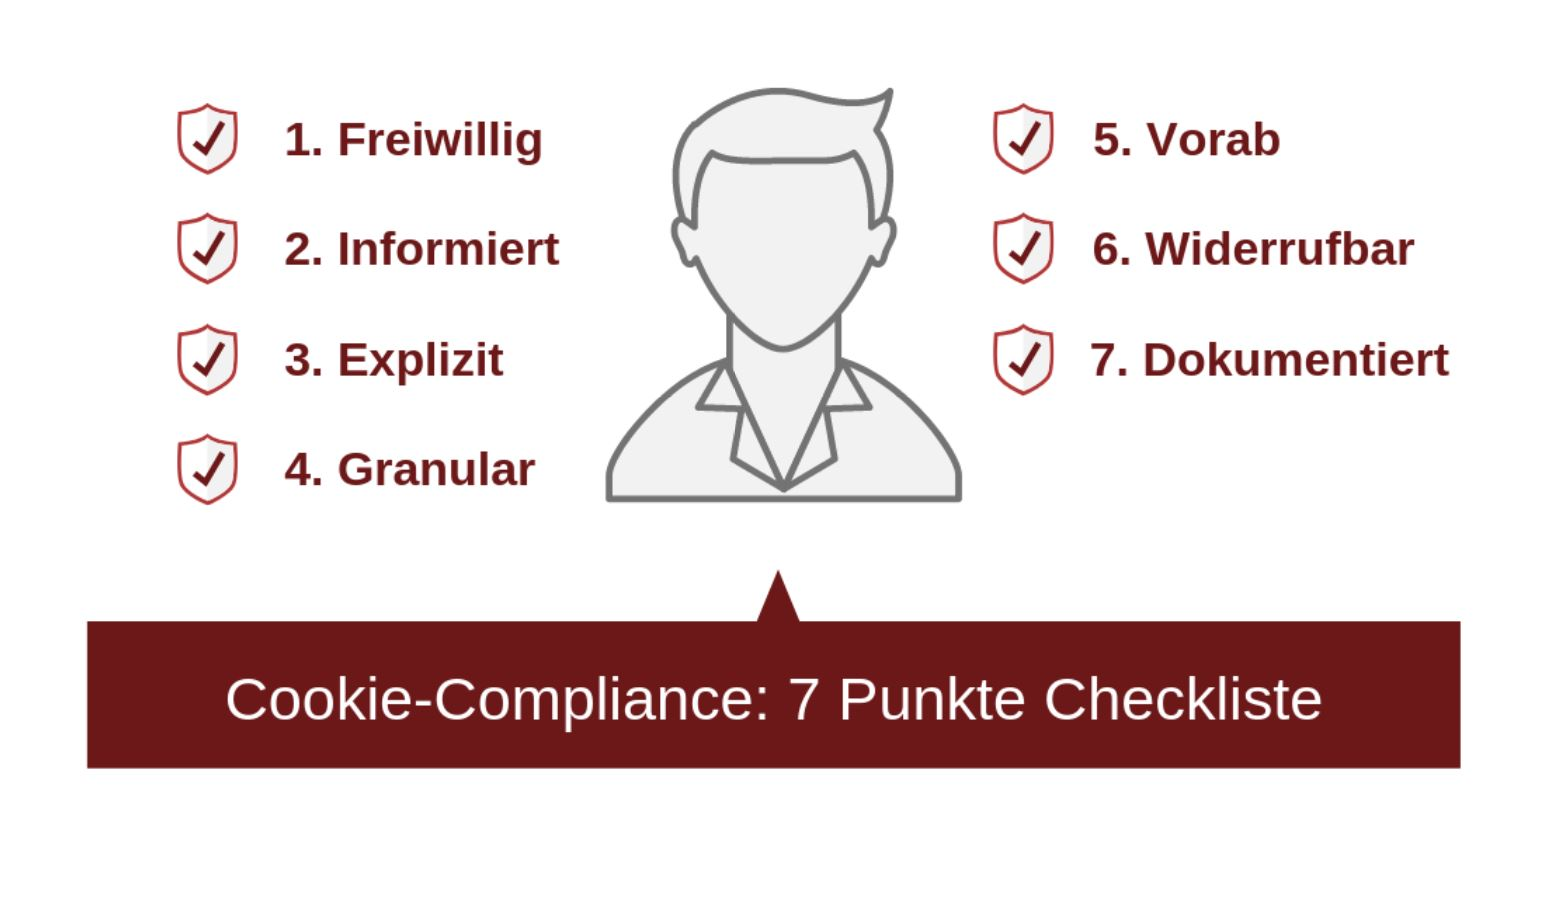 Cookie-Compliance: 7 Punkte Checkliste